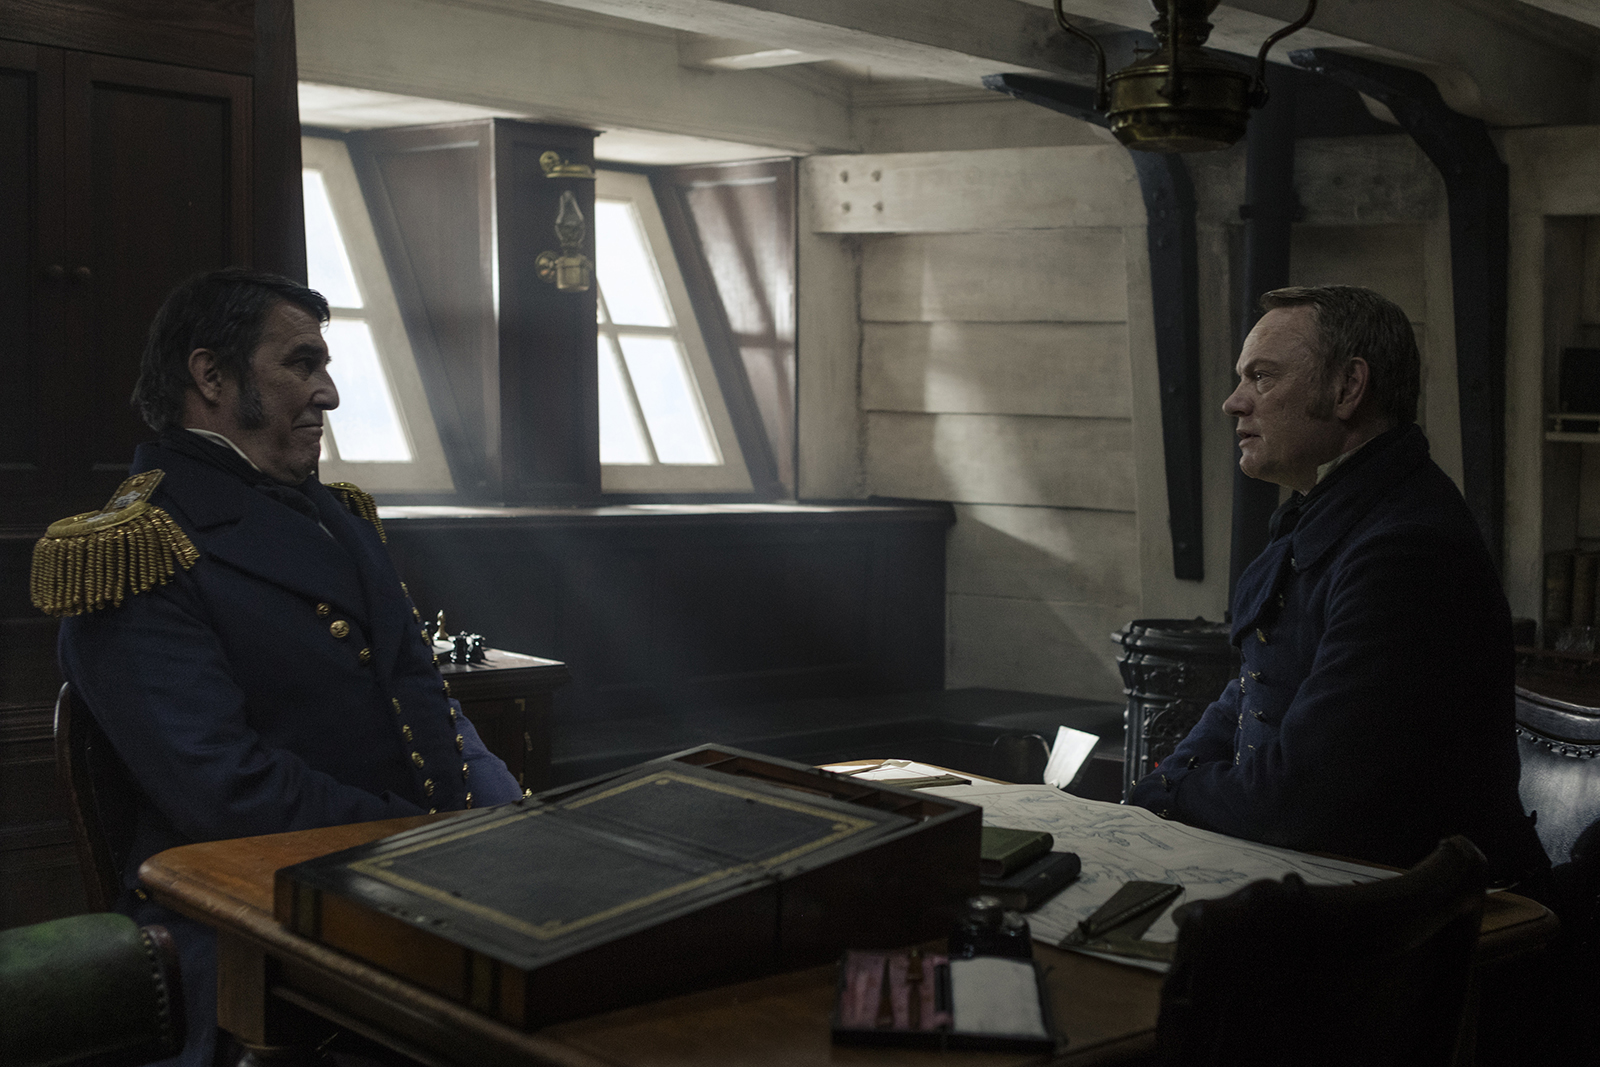 Ciarán Hinds as John Franklin, Jared Harris as Francis Crozier - The Terror _ Season 1, Episode 2 - Photo Credit: Aidan Monaghan/AMC